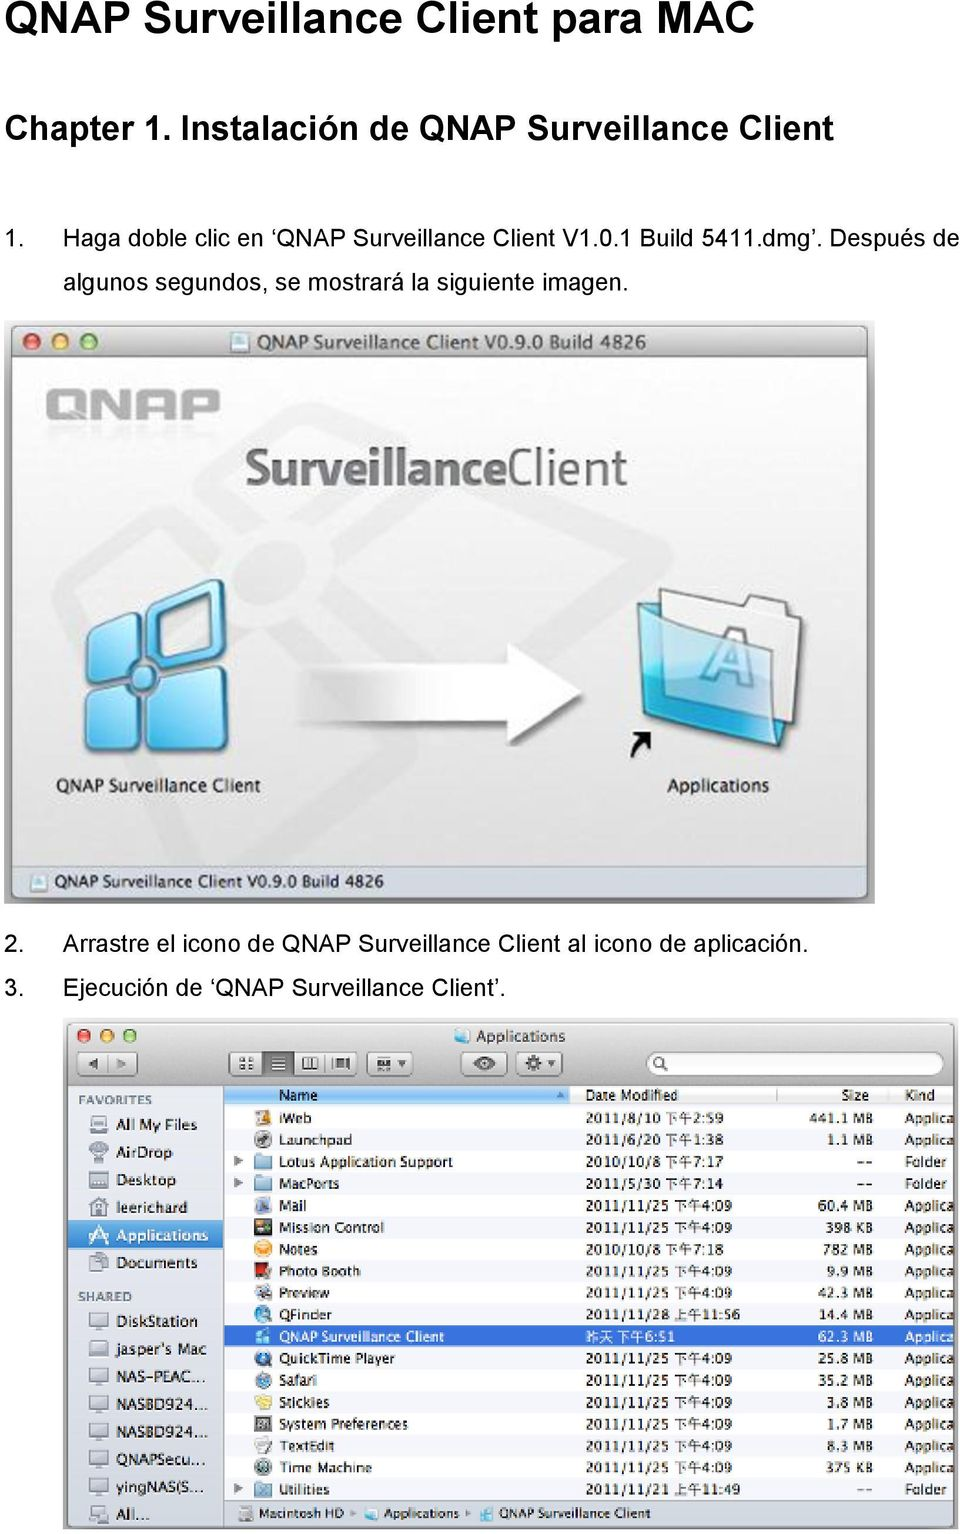 Haga doble clic en QNAP Surveillance Client V1.0.1 Build 5411.dmg.